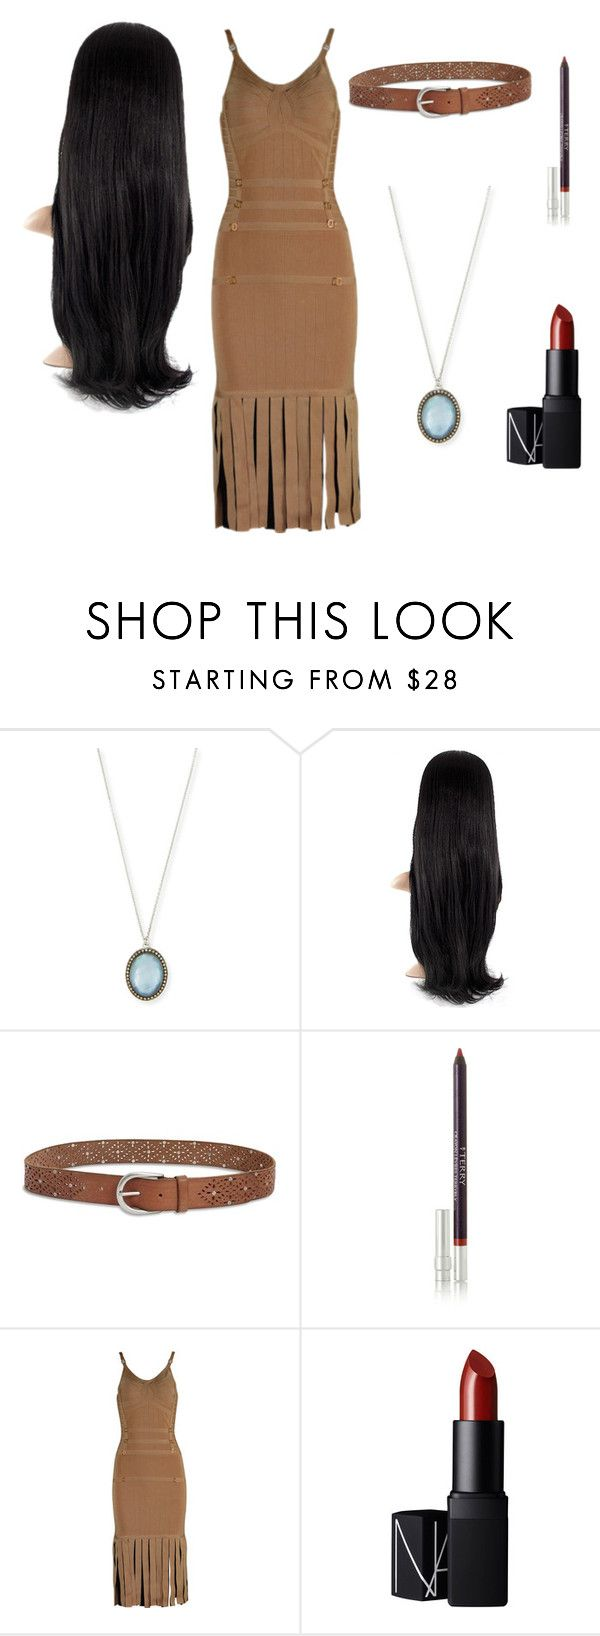 """""""DIY Disney Princesses #8: Pocahantas"""" by fionalilylove ❤ liked on Polyvore featuring Armenta, Lucky Brand, By Terry, Posh Girl and NARS Cosmetics"""